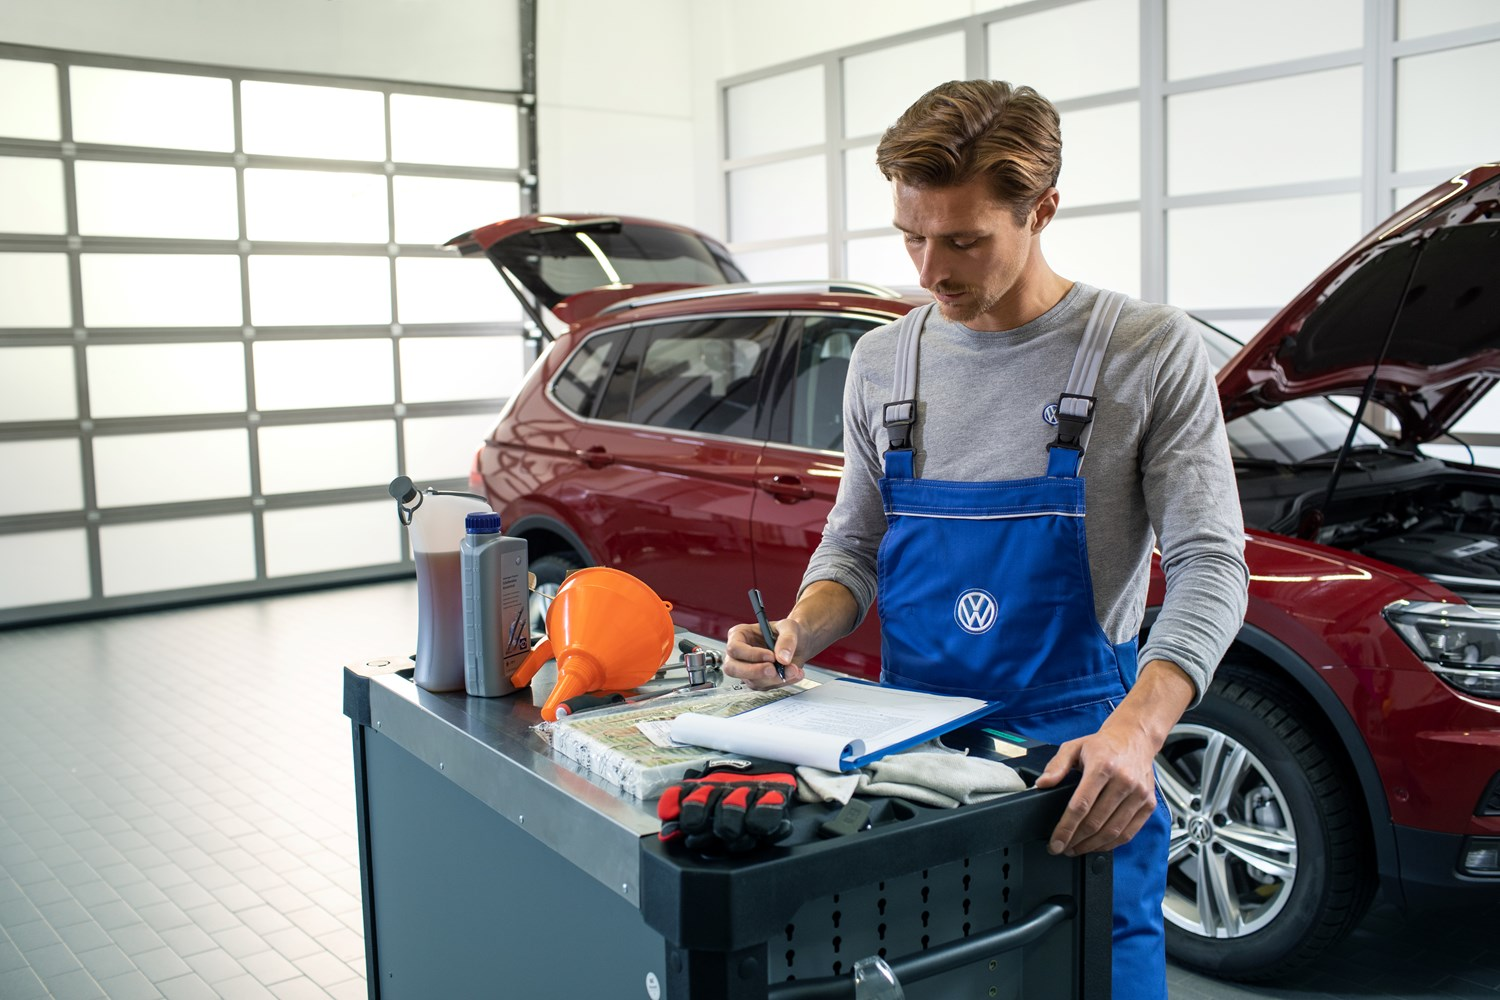 Mechanic filling out paper work